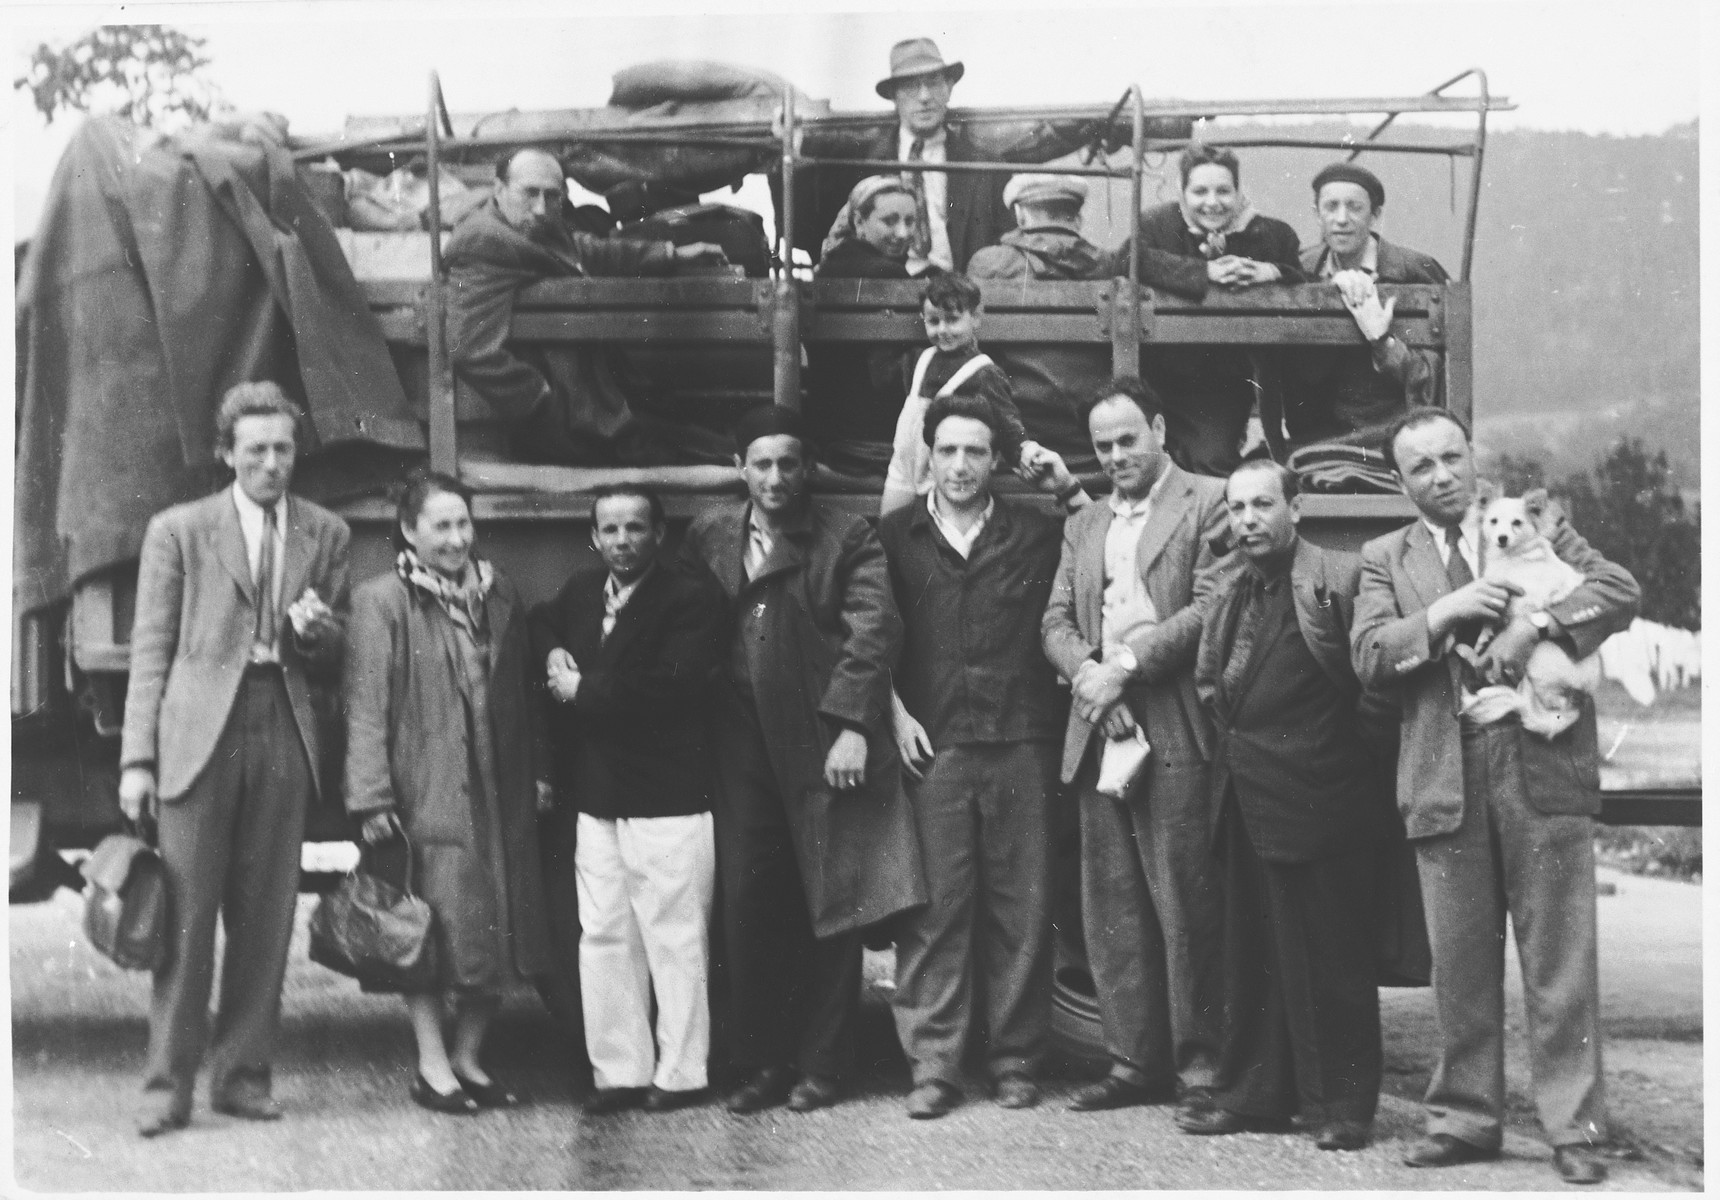 Jewish DPs gather in front of and inside an open truck in the Landsberg DP camp.